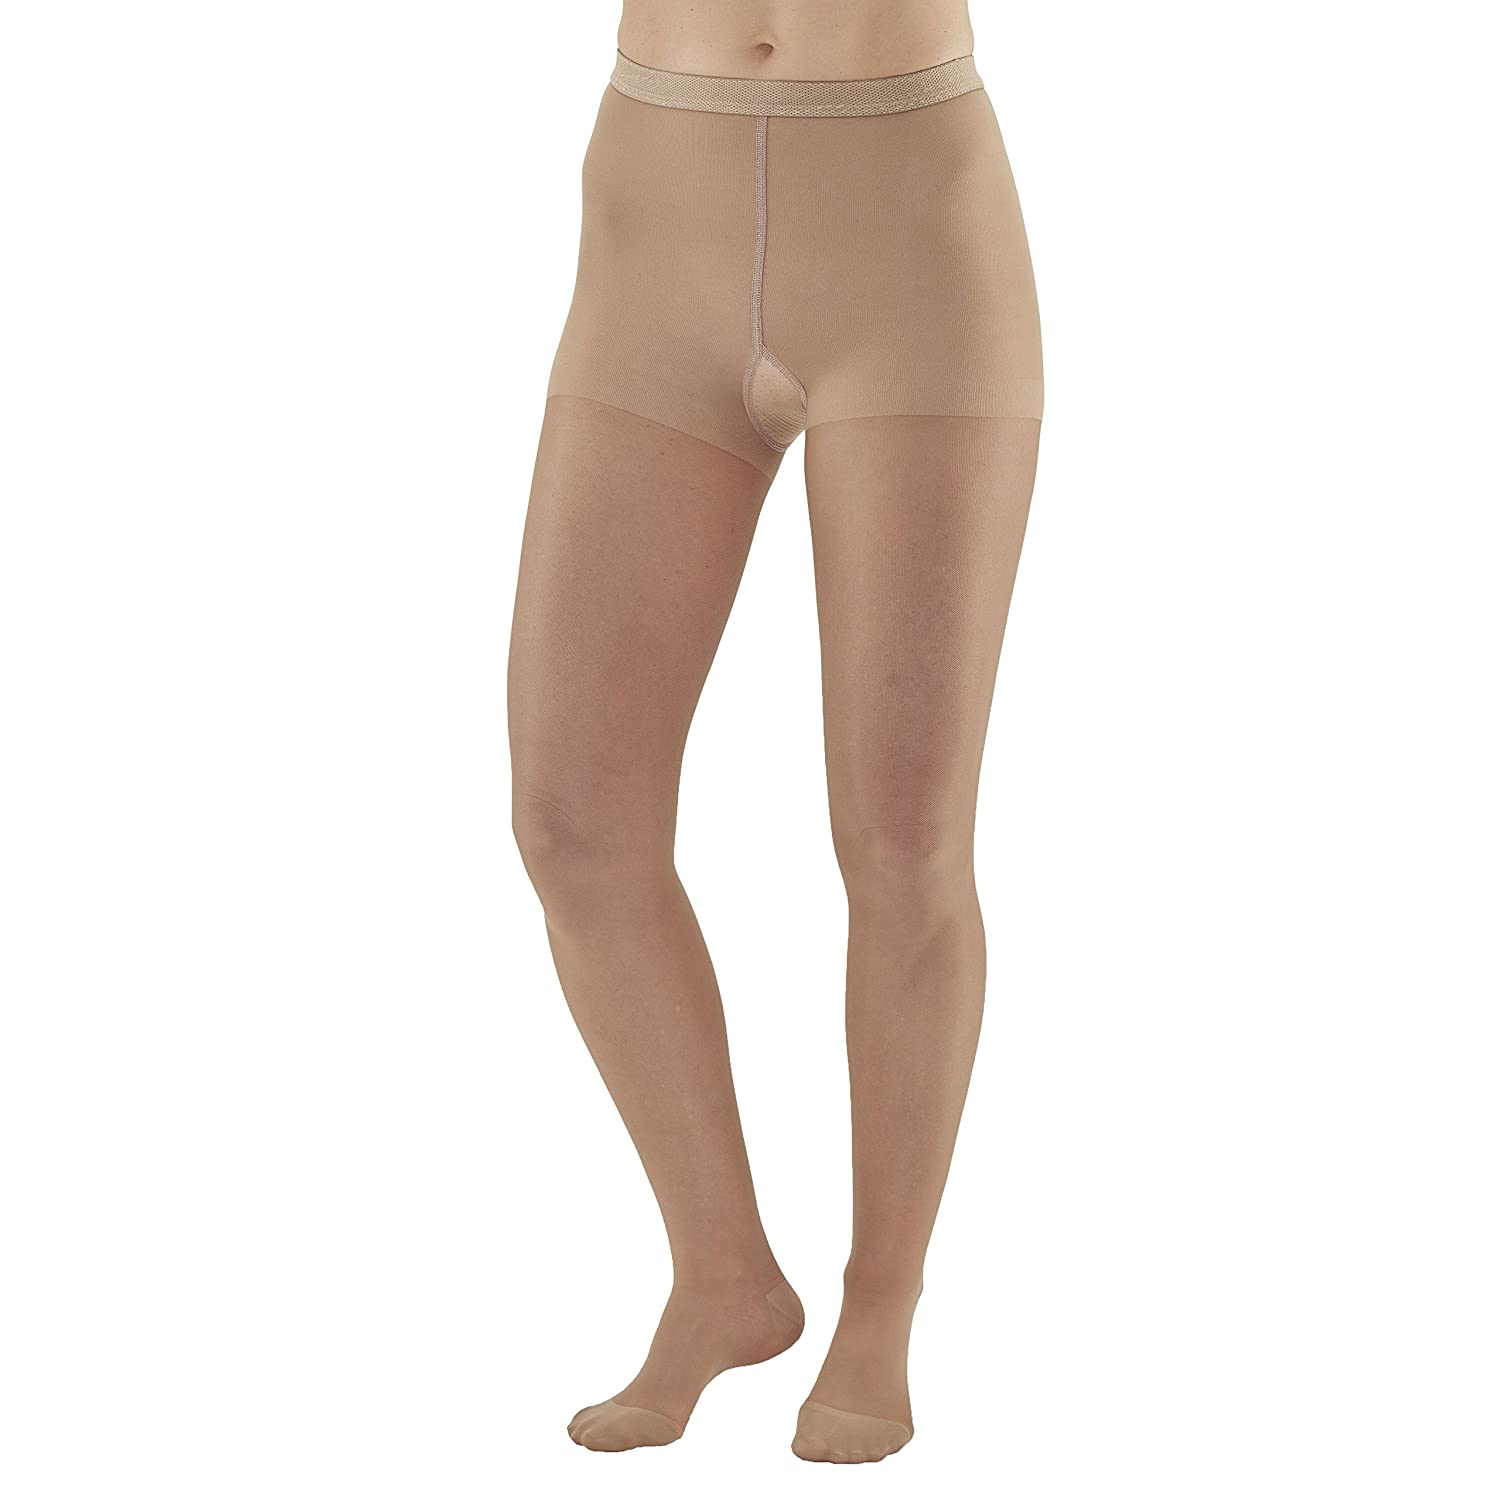 Ames Walker Women's AW Style 15 Sheer Support Closed Toe Compression Pantyhose - 15-20 mmHg Beige X-Large 15-XL-Beige Nylon/Spandex